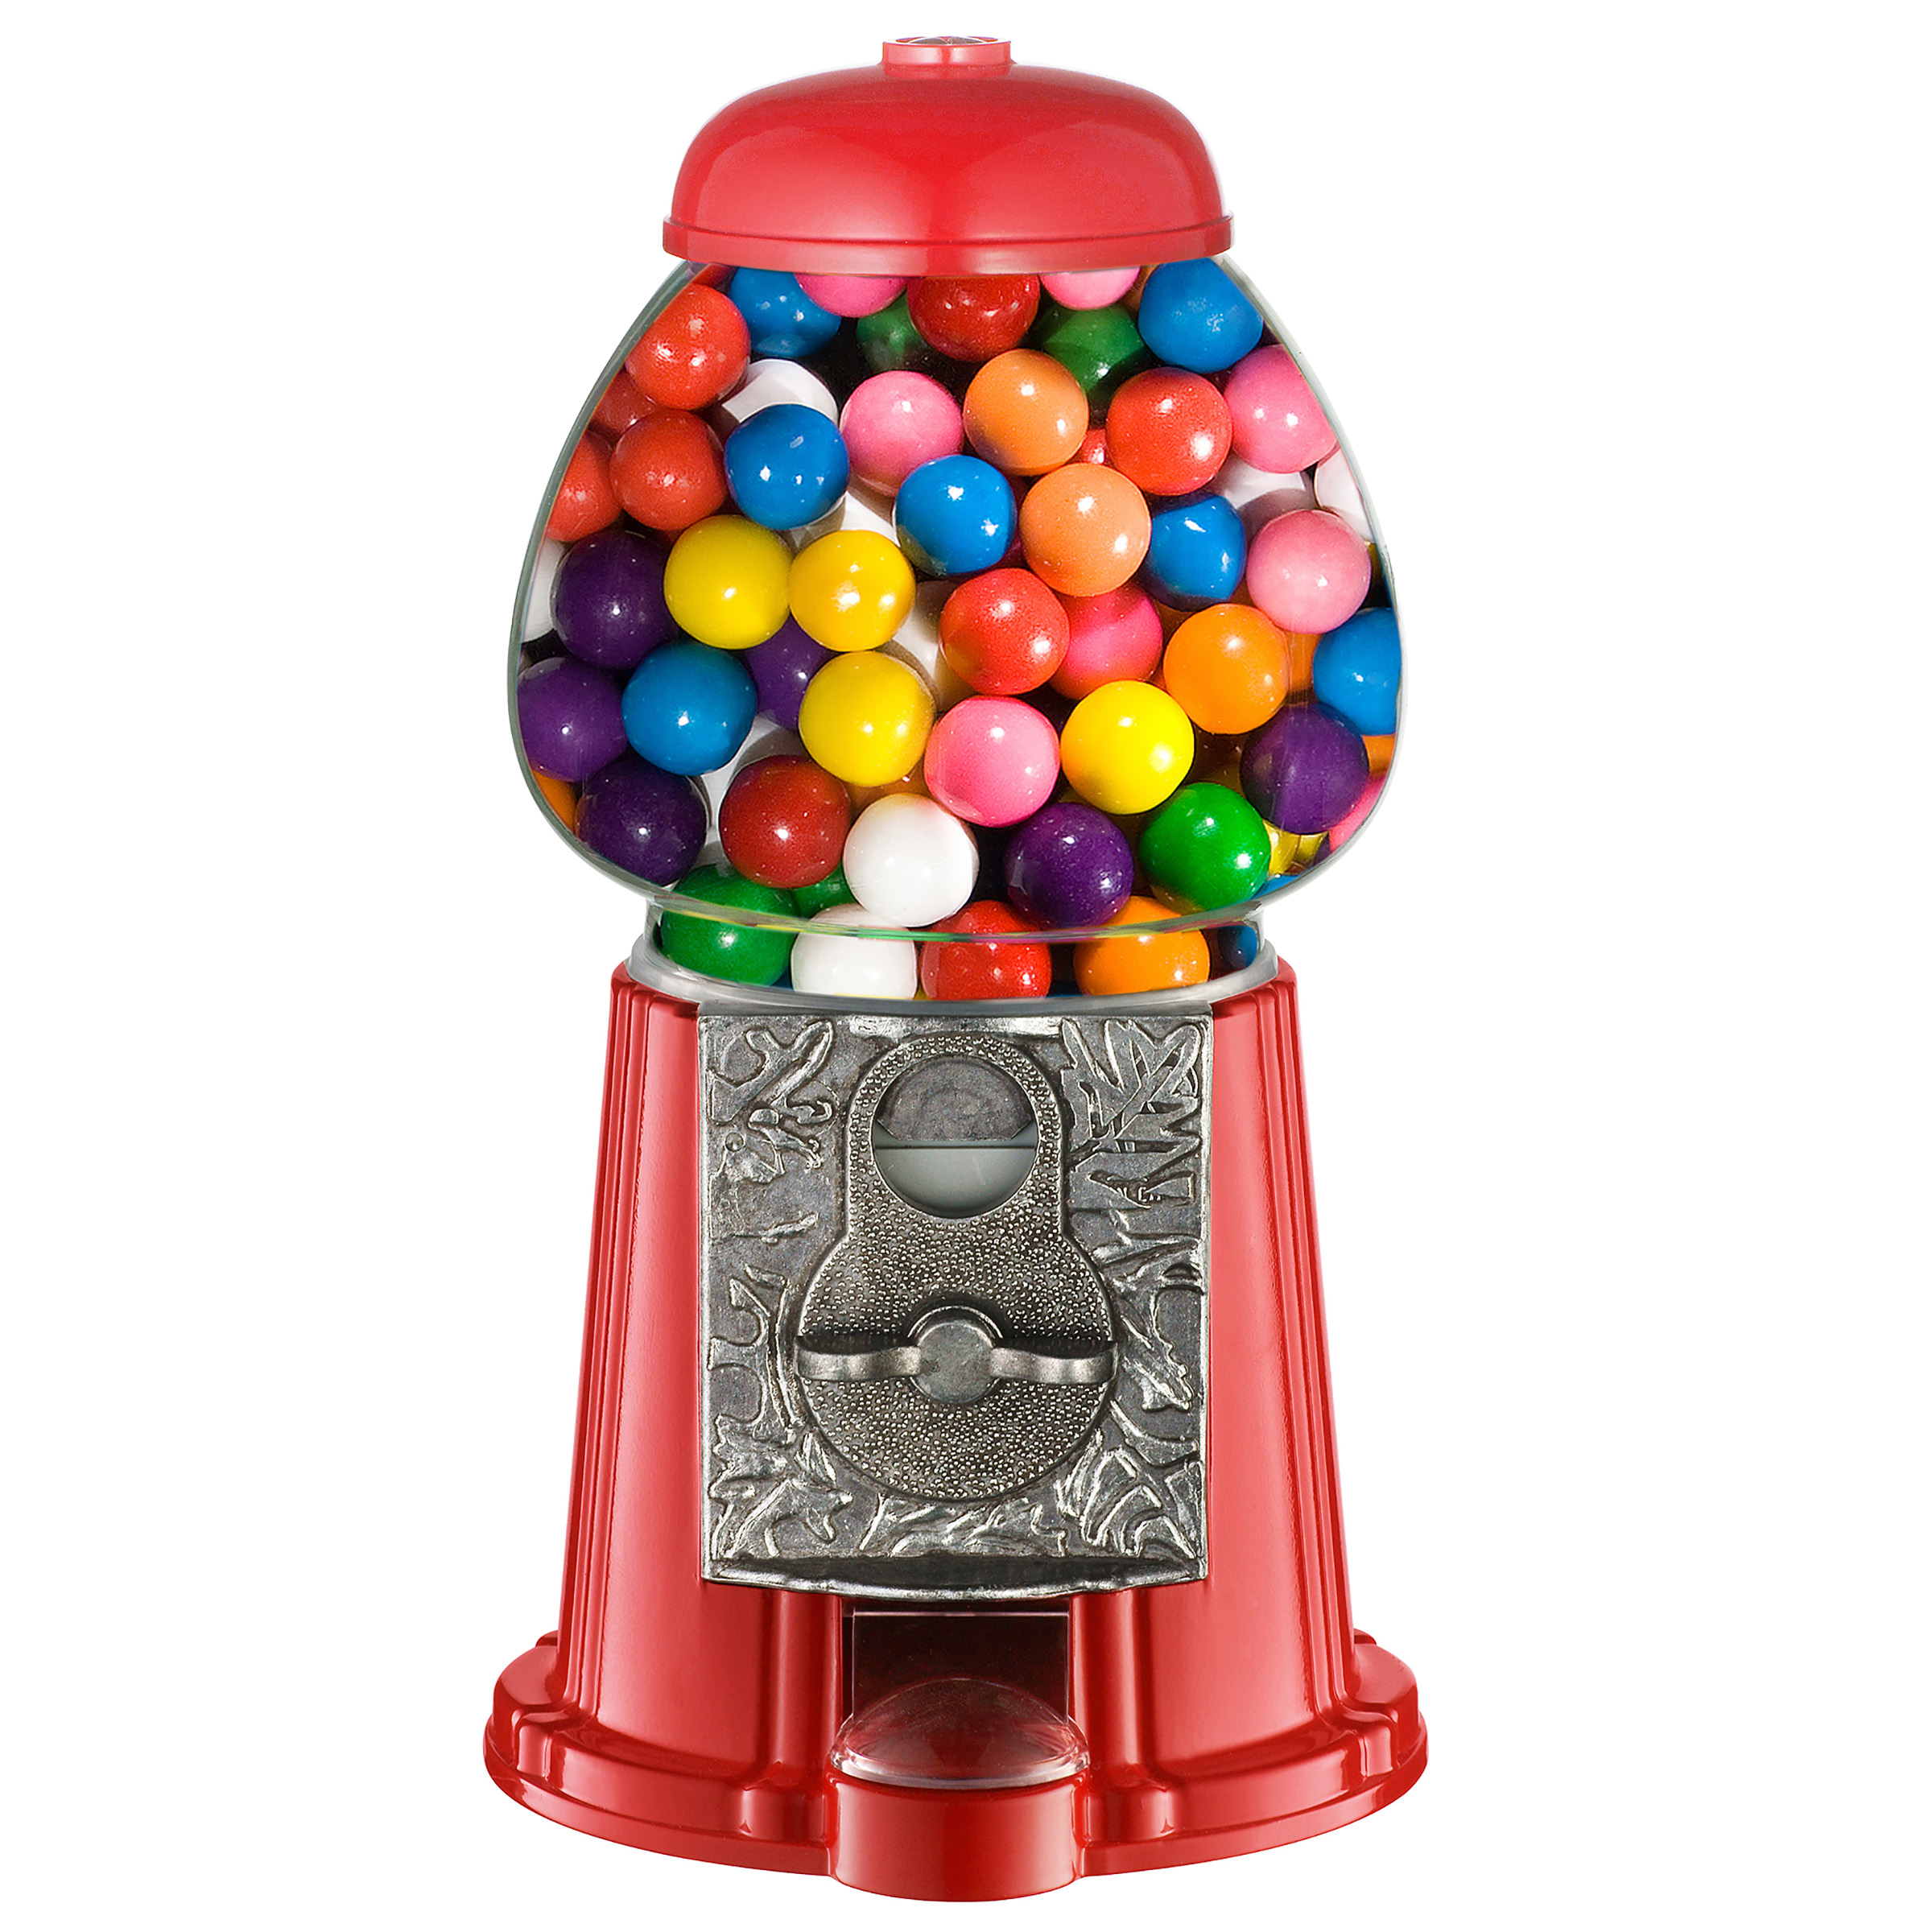 "11"" Junior Vintage Old Fashioned Candy Gumball Machine Bank Toy by Great Northern Popcorn"